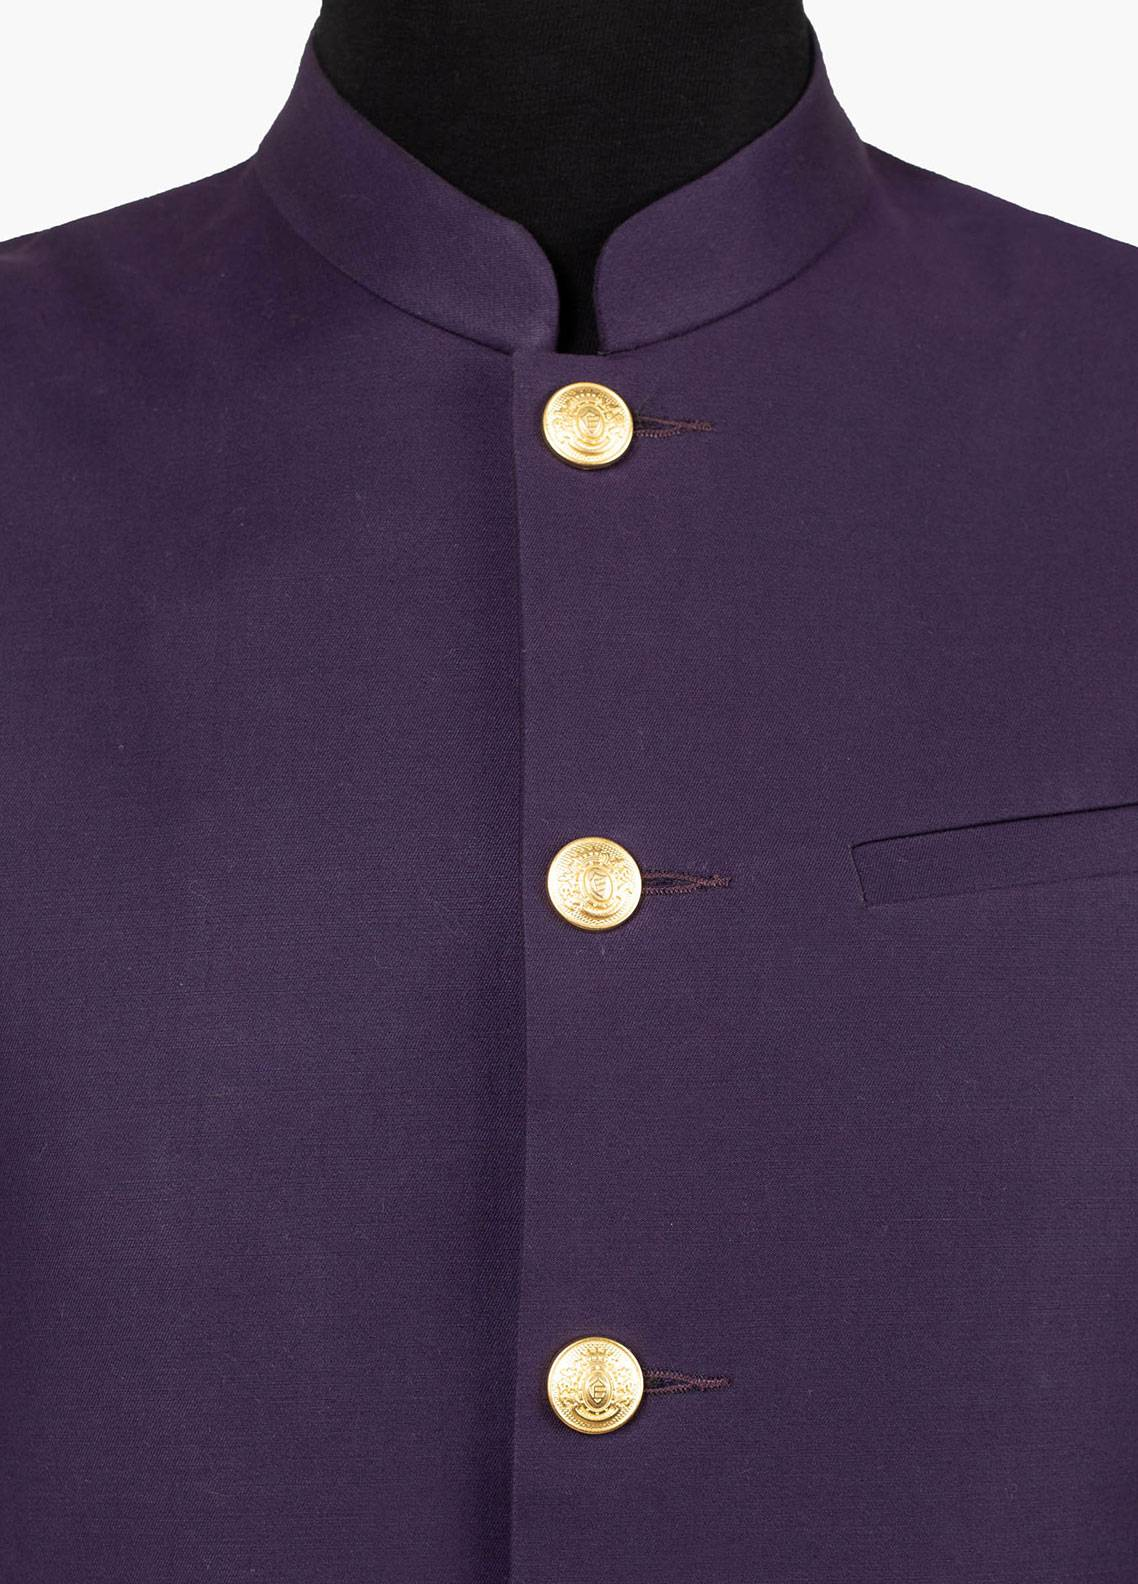 Brumano Cotton Formal Men Waistcoat - Purple BRM-511-B